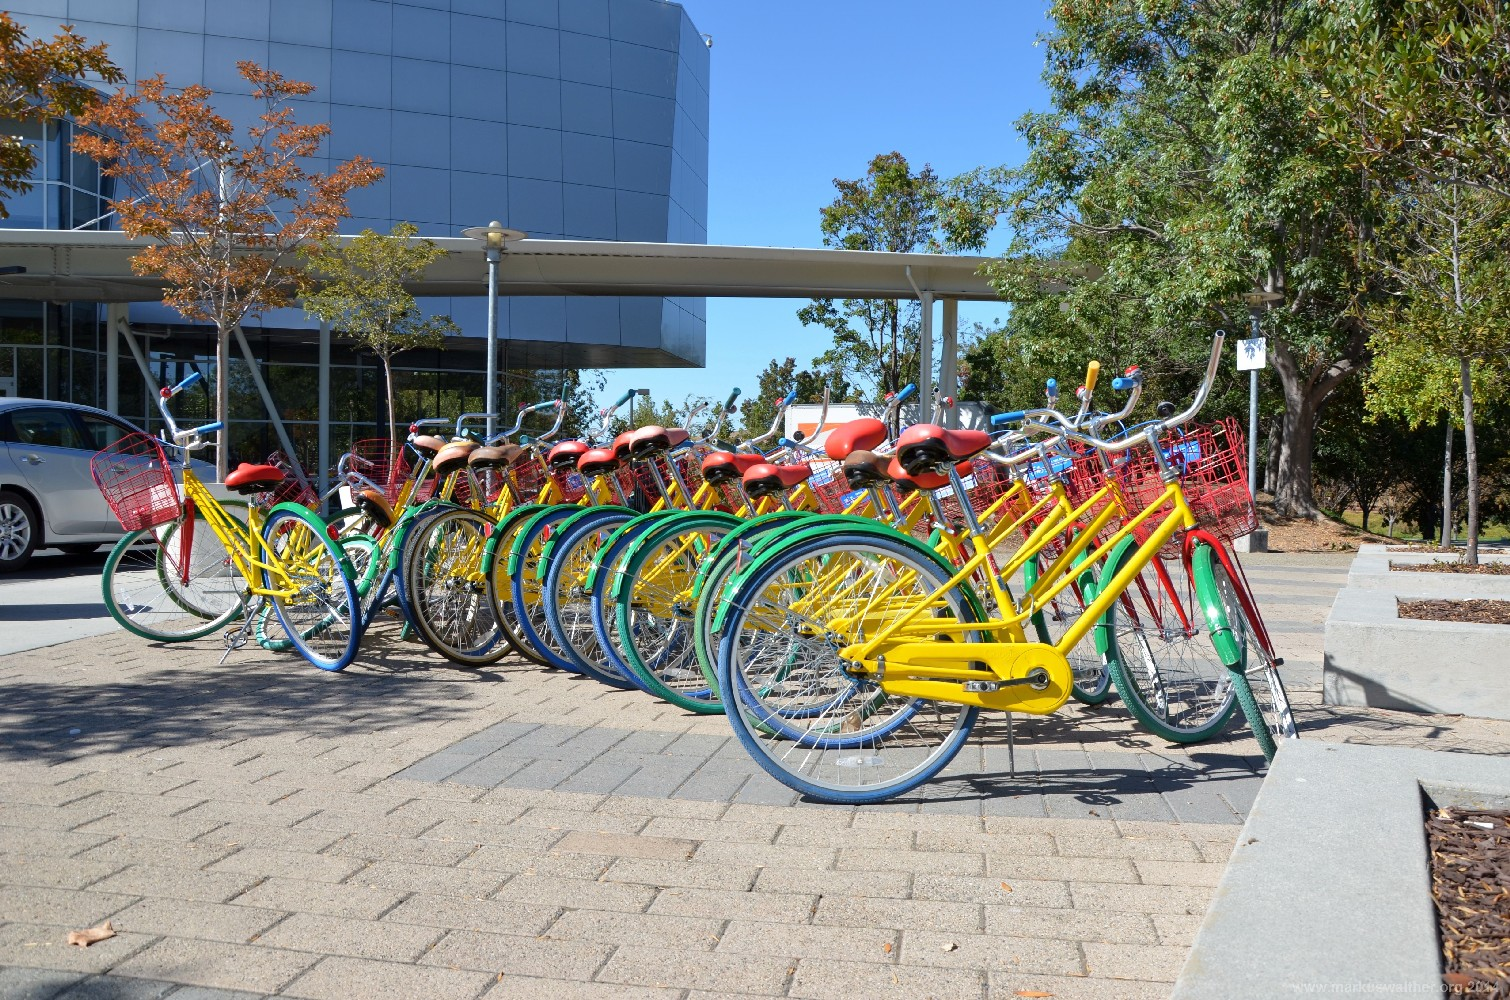 Google Fahrräder in Mountain View, CA